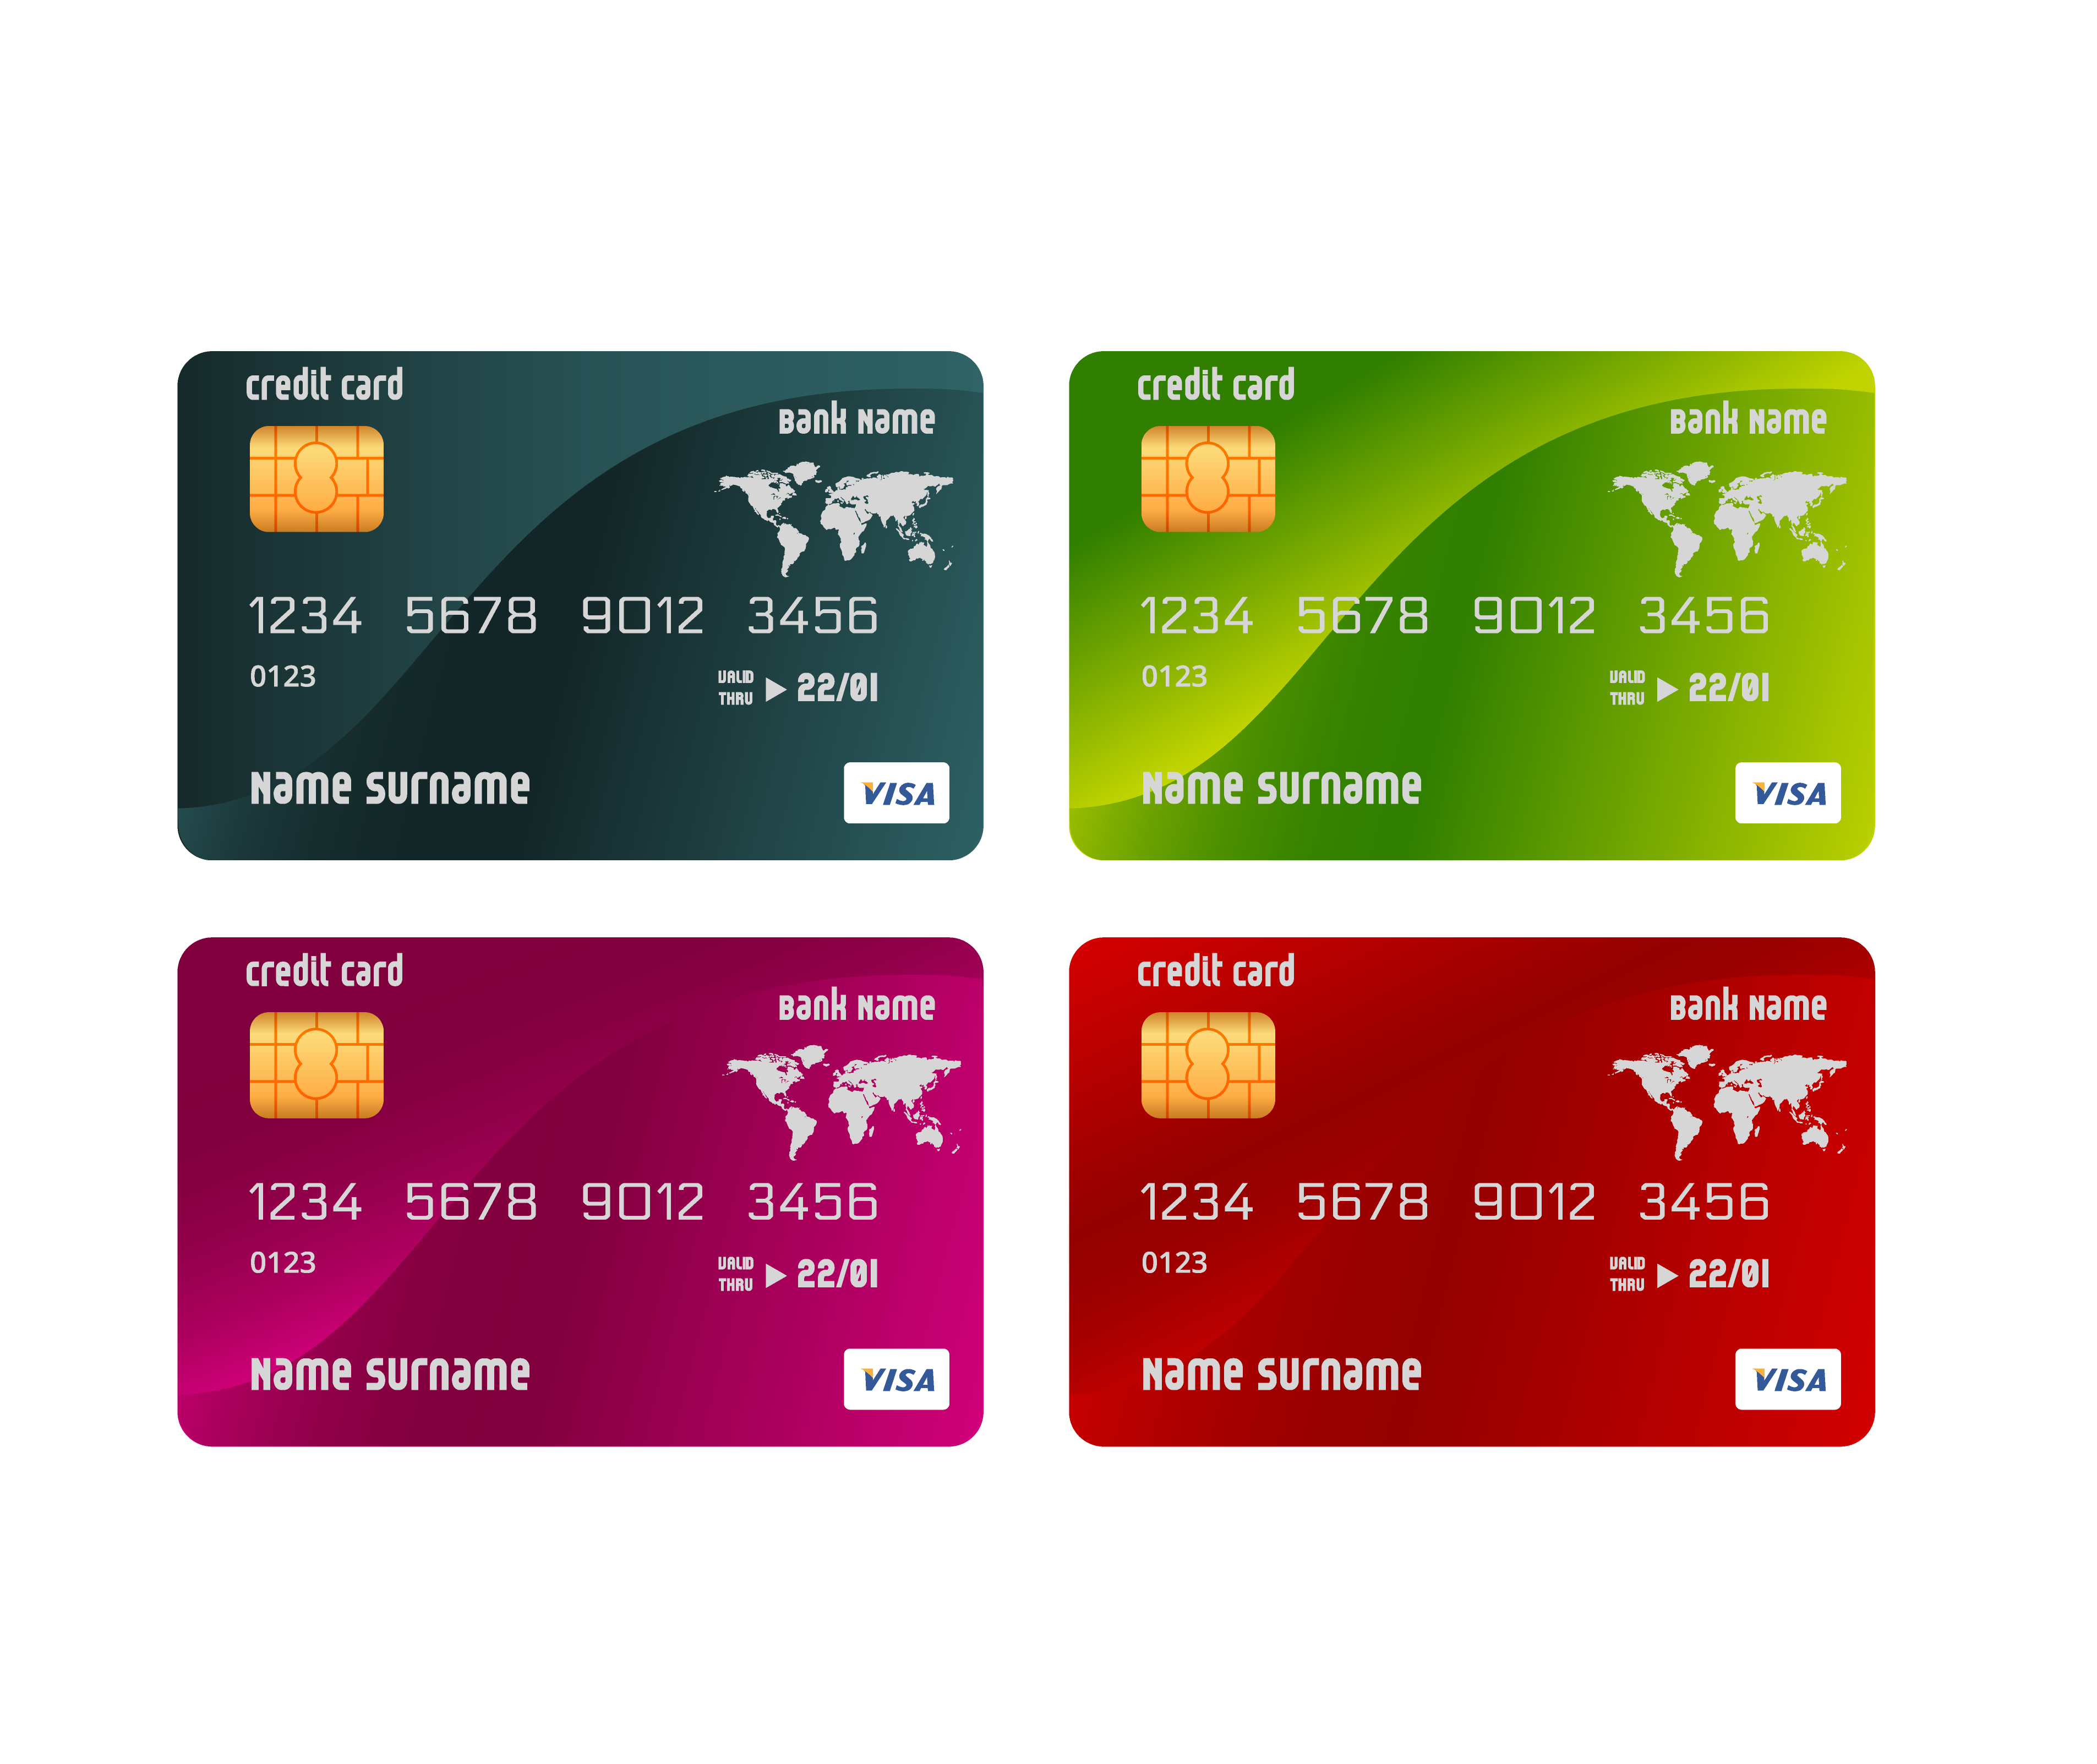 Credit card ATM card Template.